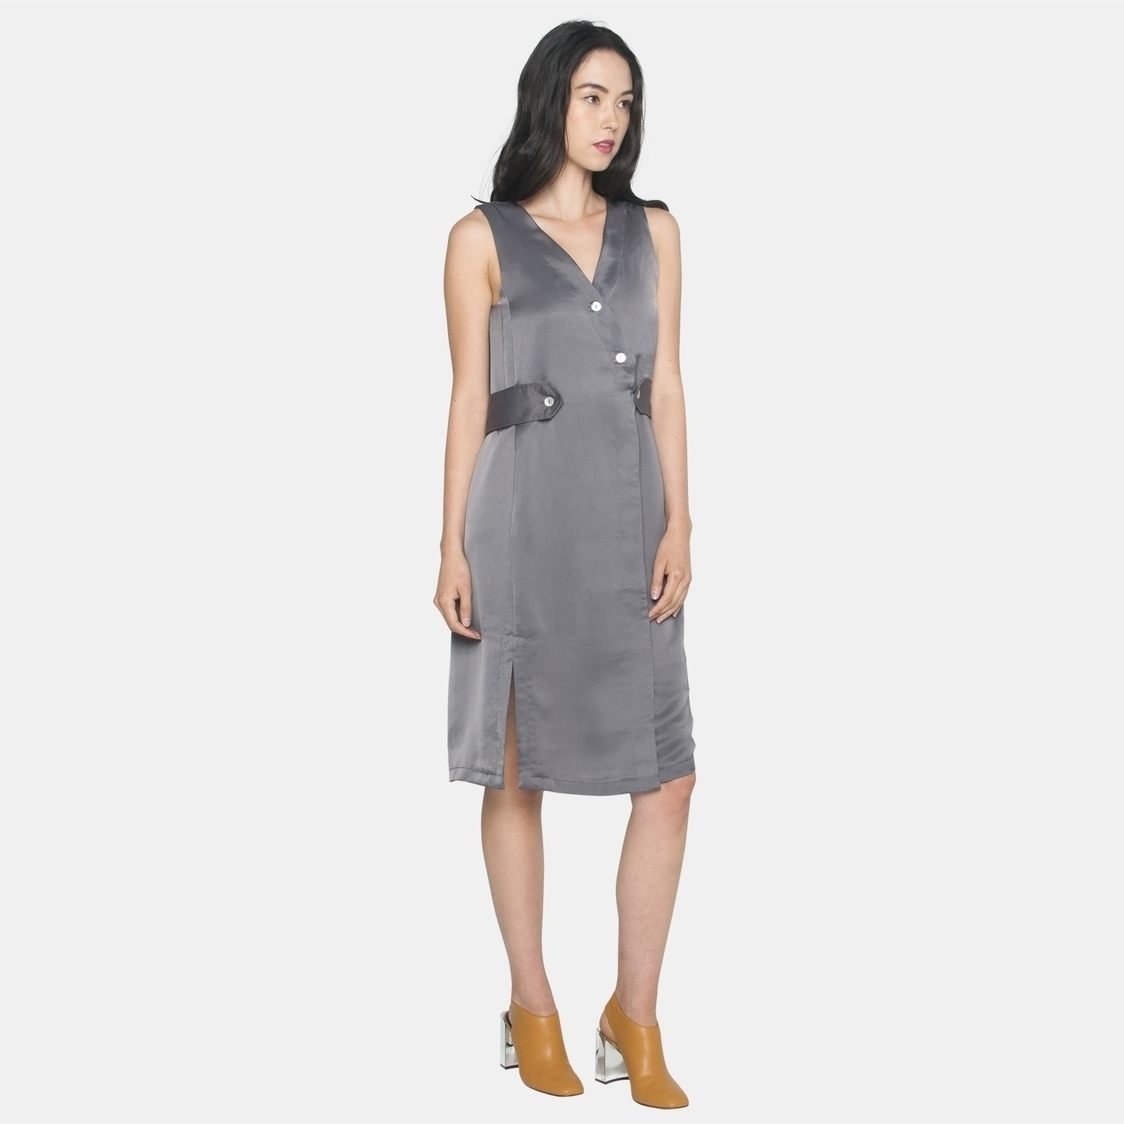 Ellysage Belted Shirt Dress with Slits in Grey